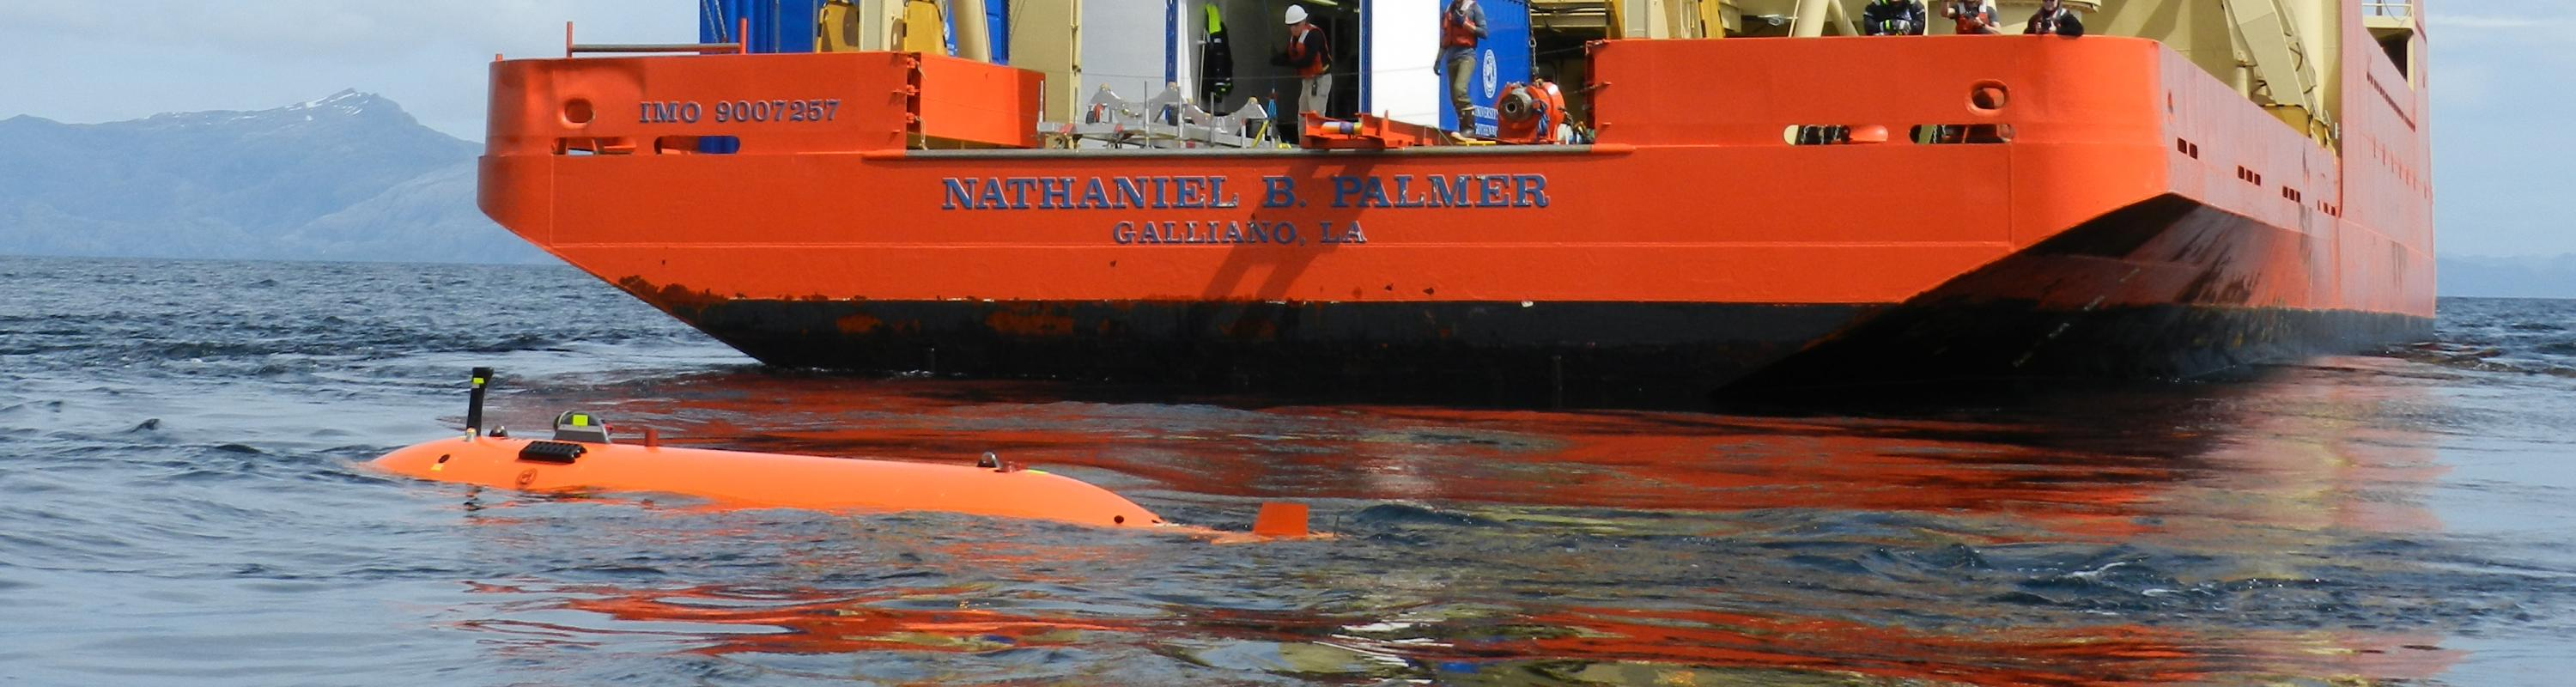 After a successful release from the Palmer, the AUV sits for 10 minutes at the surface to fill with water before heading off on its four hour test mission in the Straits of Magellan